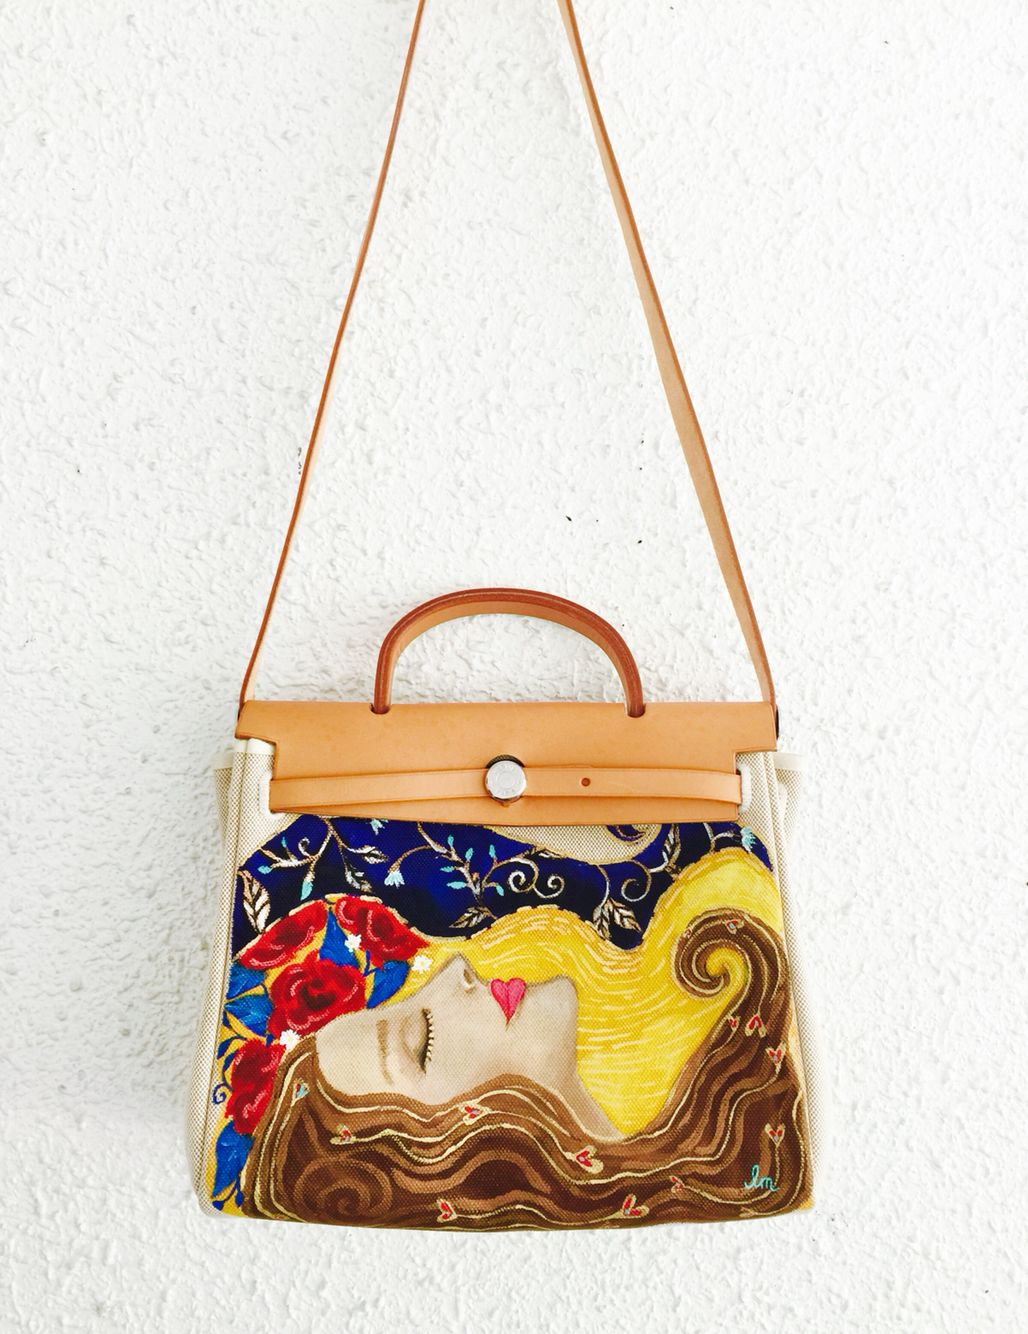 c66f9cbb08 Hand painted Hermes bag | shoes and bags | Bags, Painted bags, Art bag